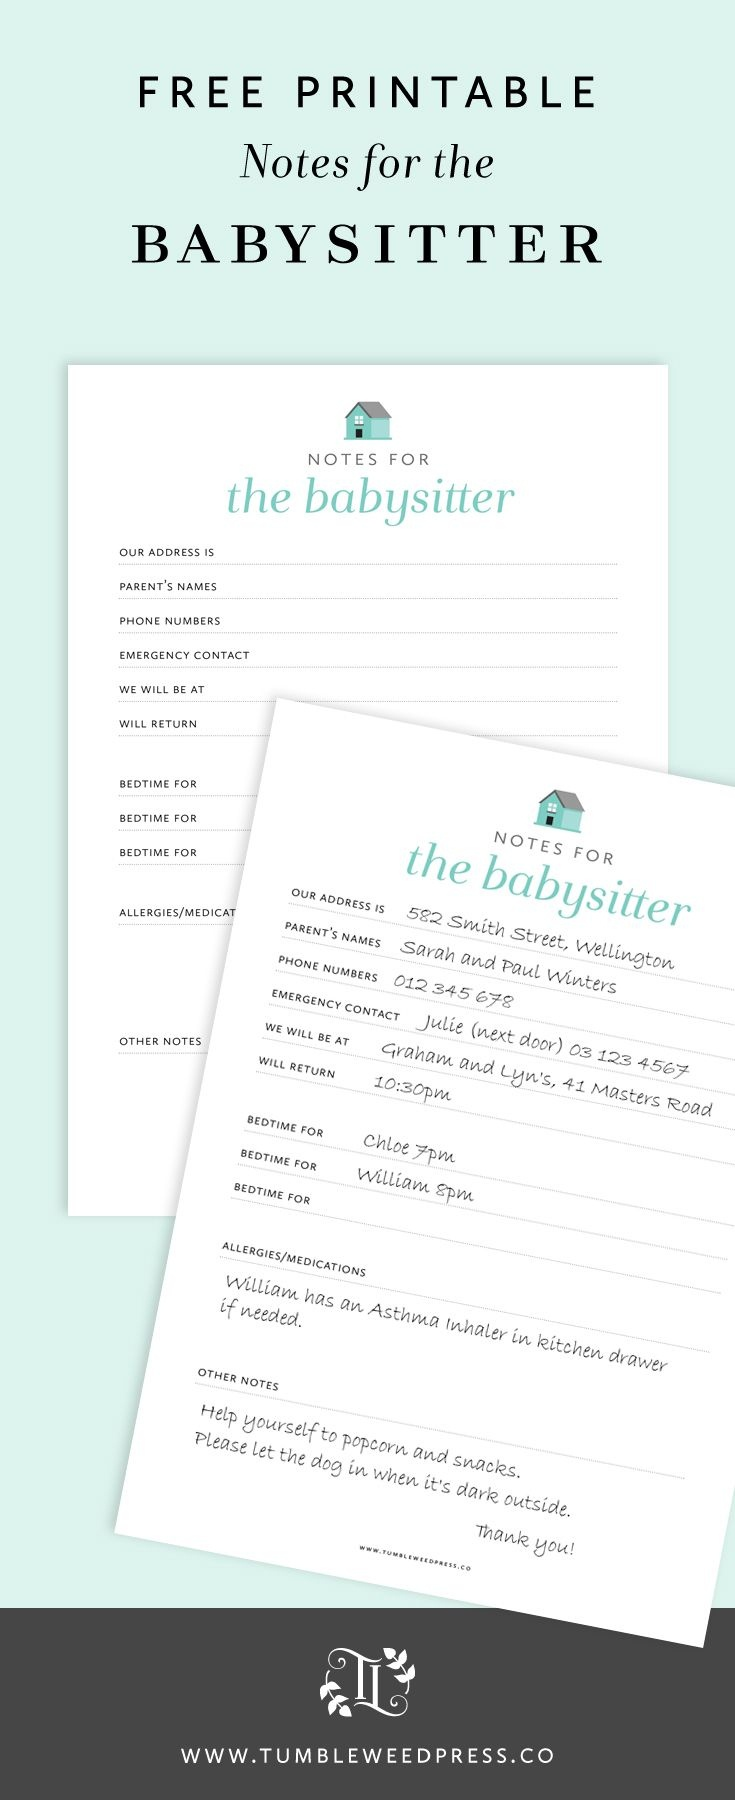 Babysitter Notes Free Printable | Print It Out | Babysitter Notes - Babysitter Notes Free Printable